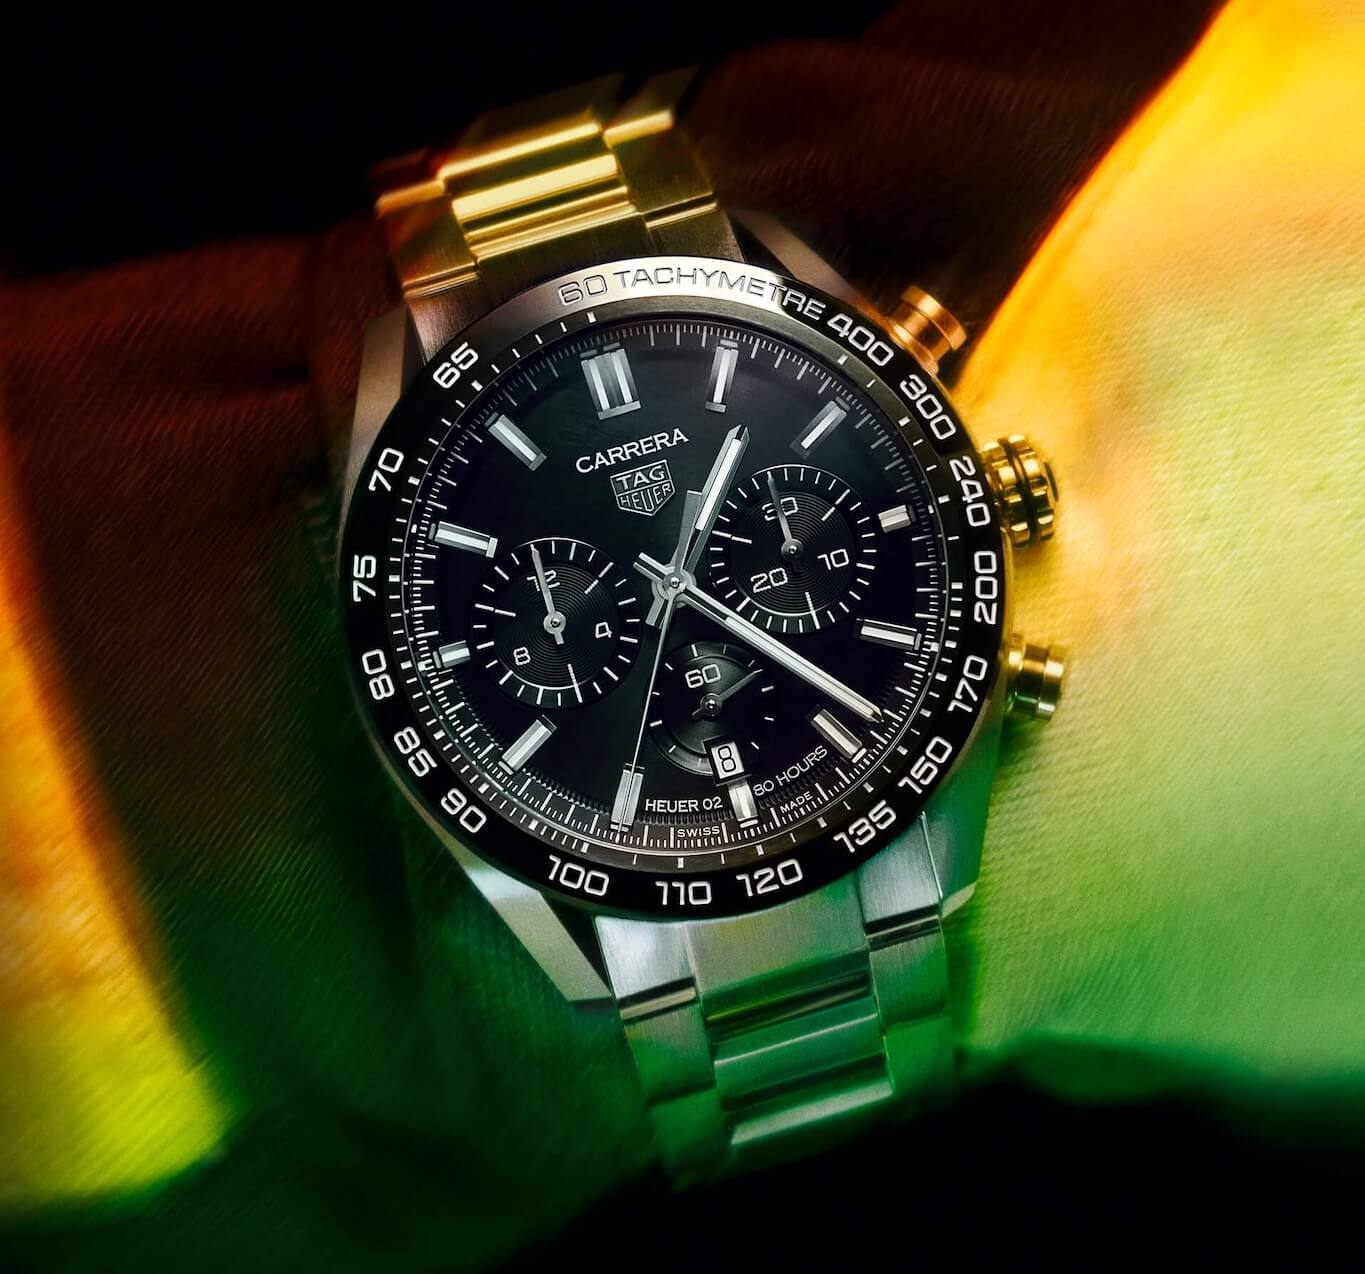 Tag Heuer Carrera Chronograph | Wristwatches360